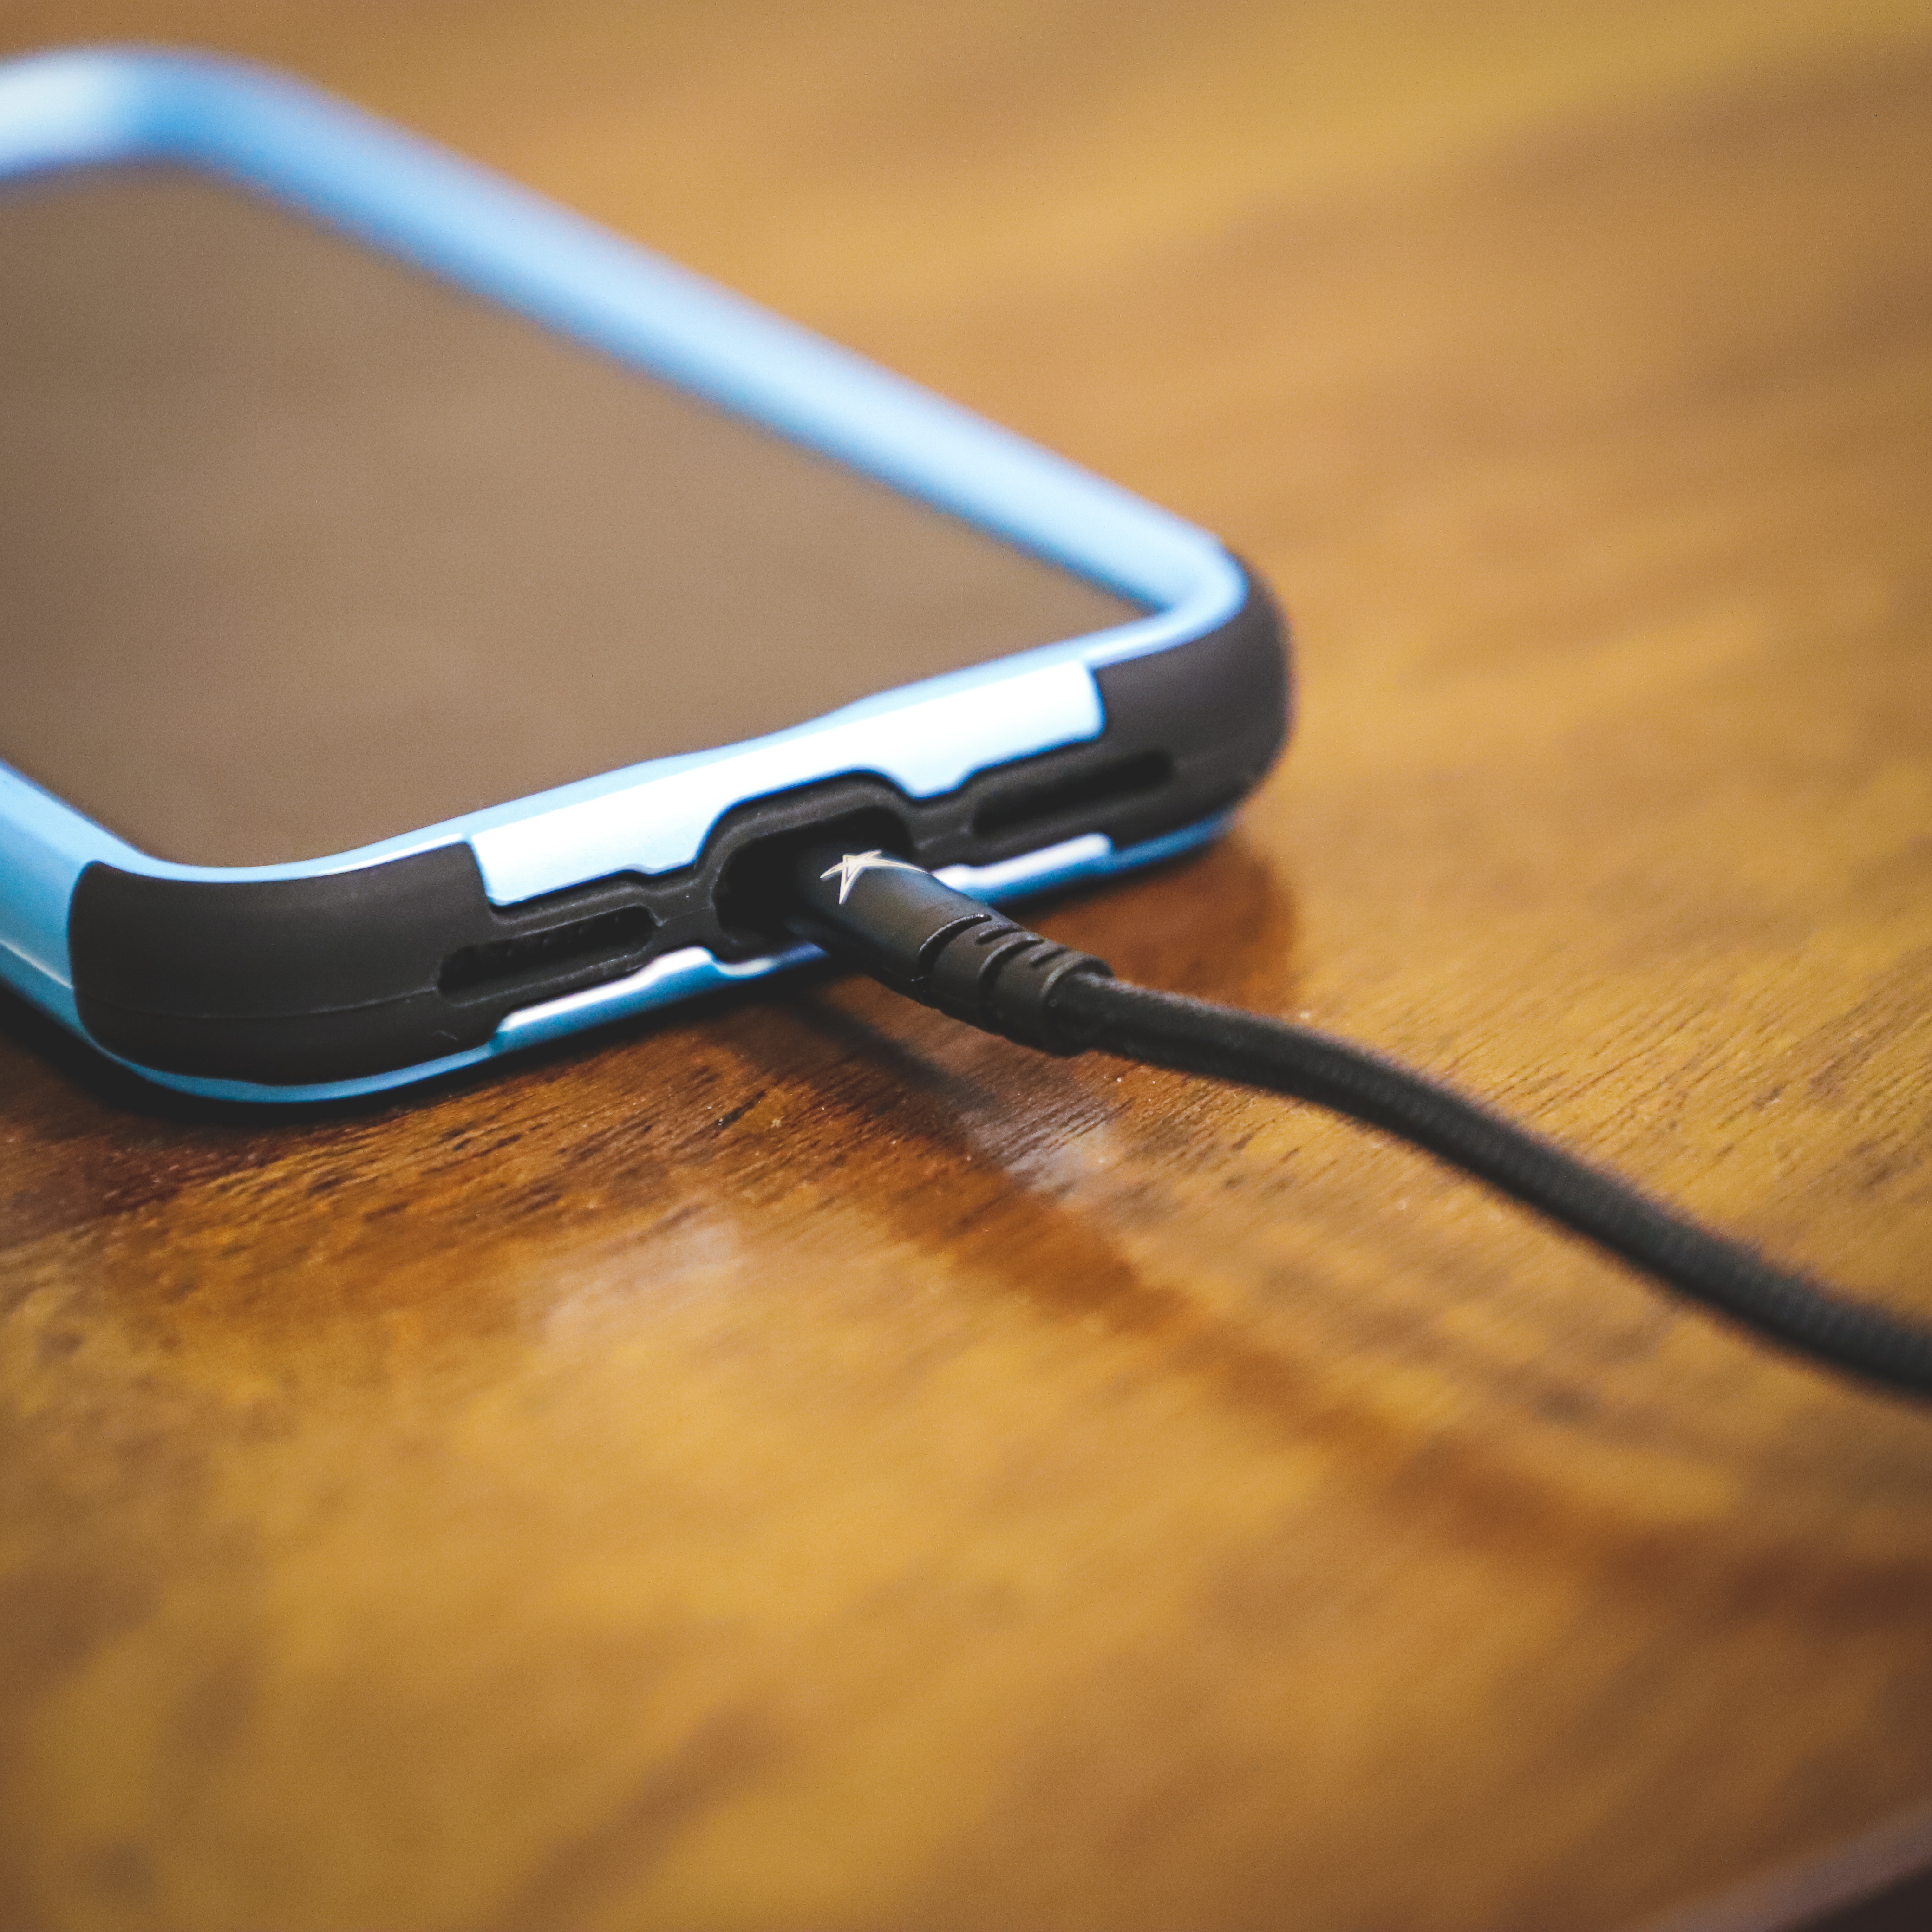 iphone charging cable blue case